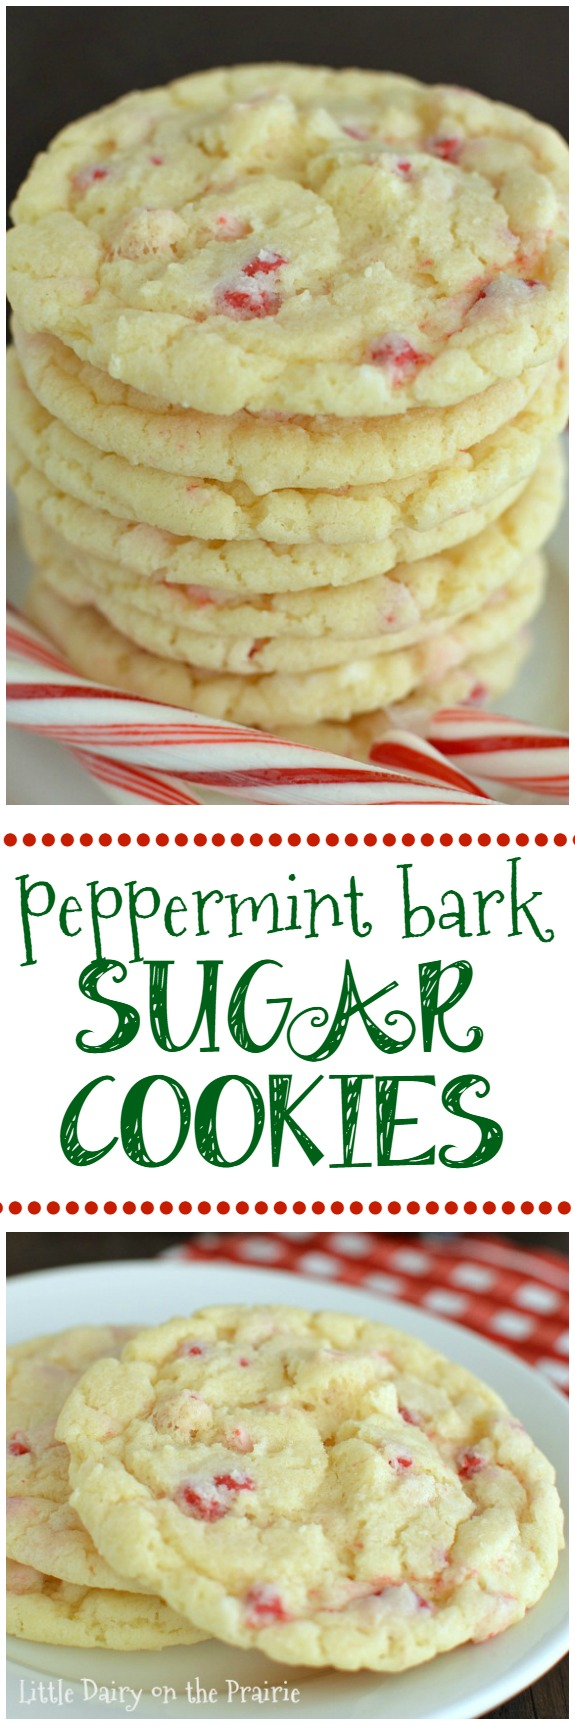 Peppermint Bark Sugar Cookies are a spin on the most popular recipe on my blog! They're melt in your mouth soft, quick and easy, to die for! Little Dairy on the Prairie